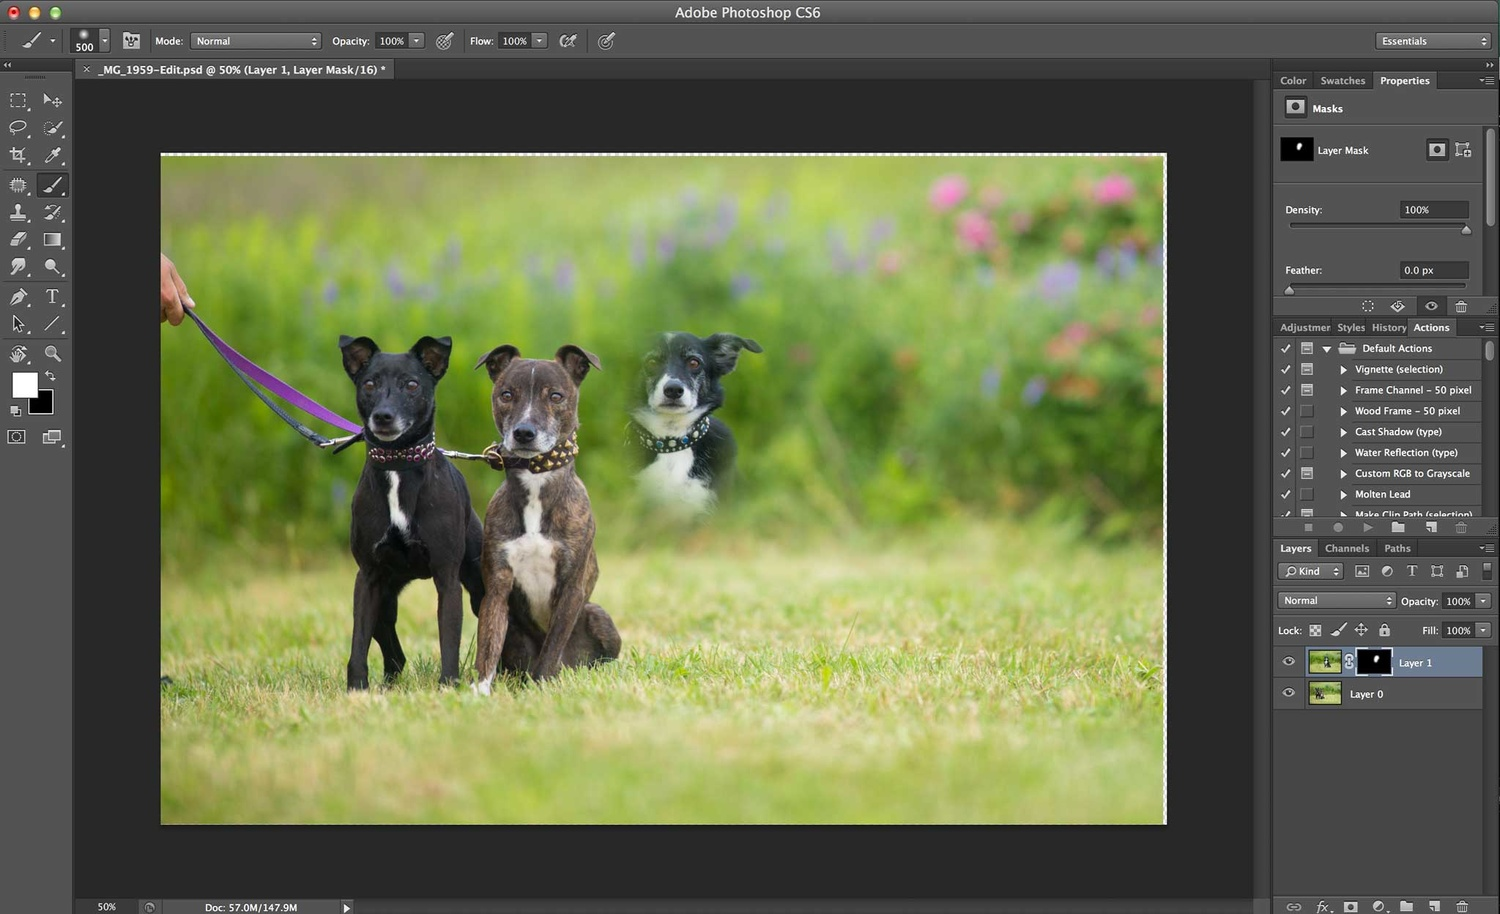 Compositing a dog group photo - Step 4